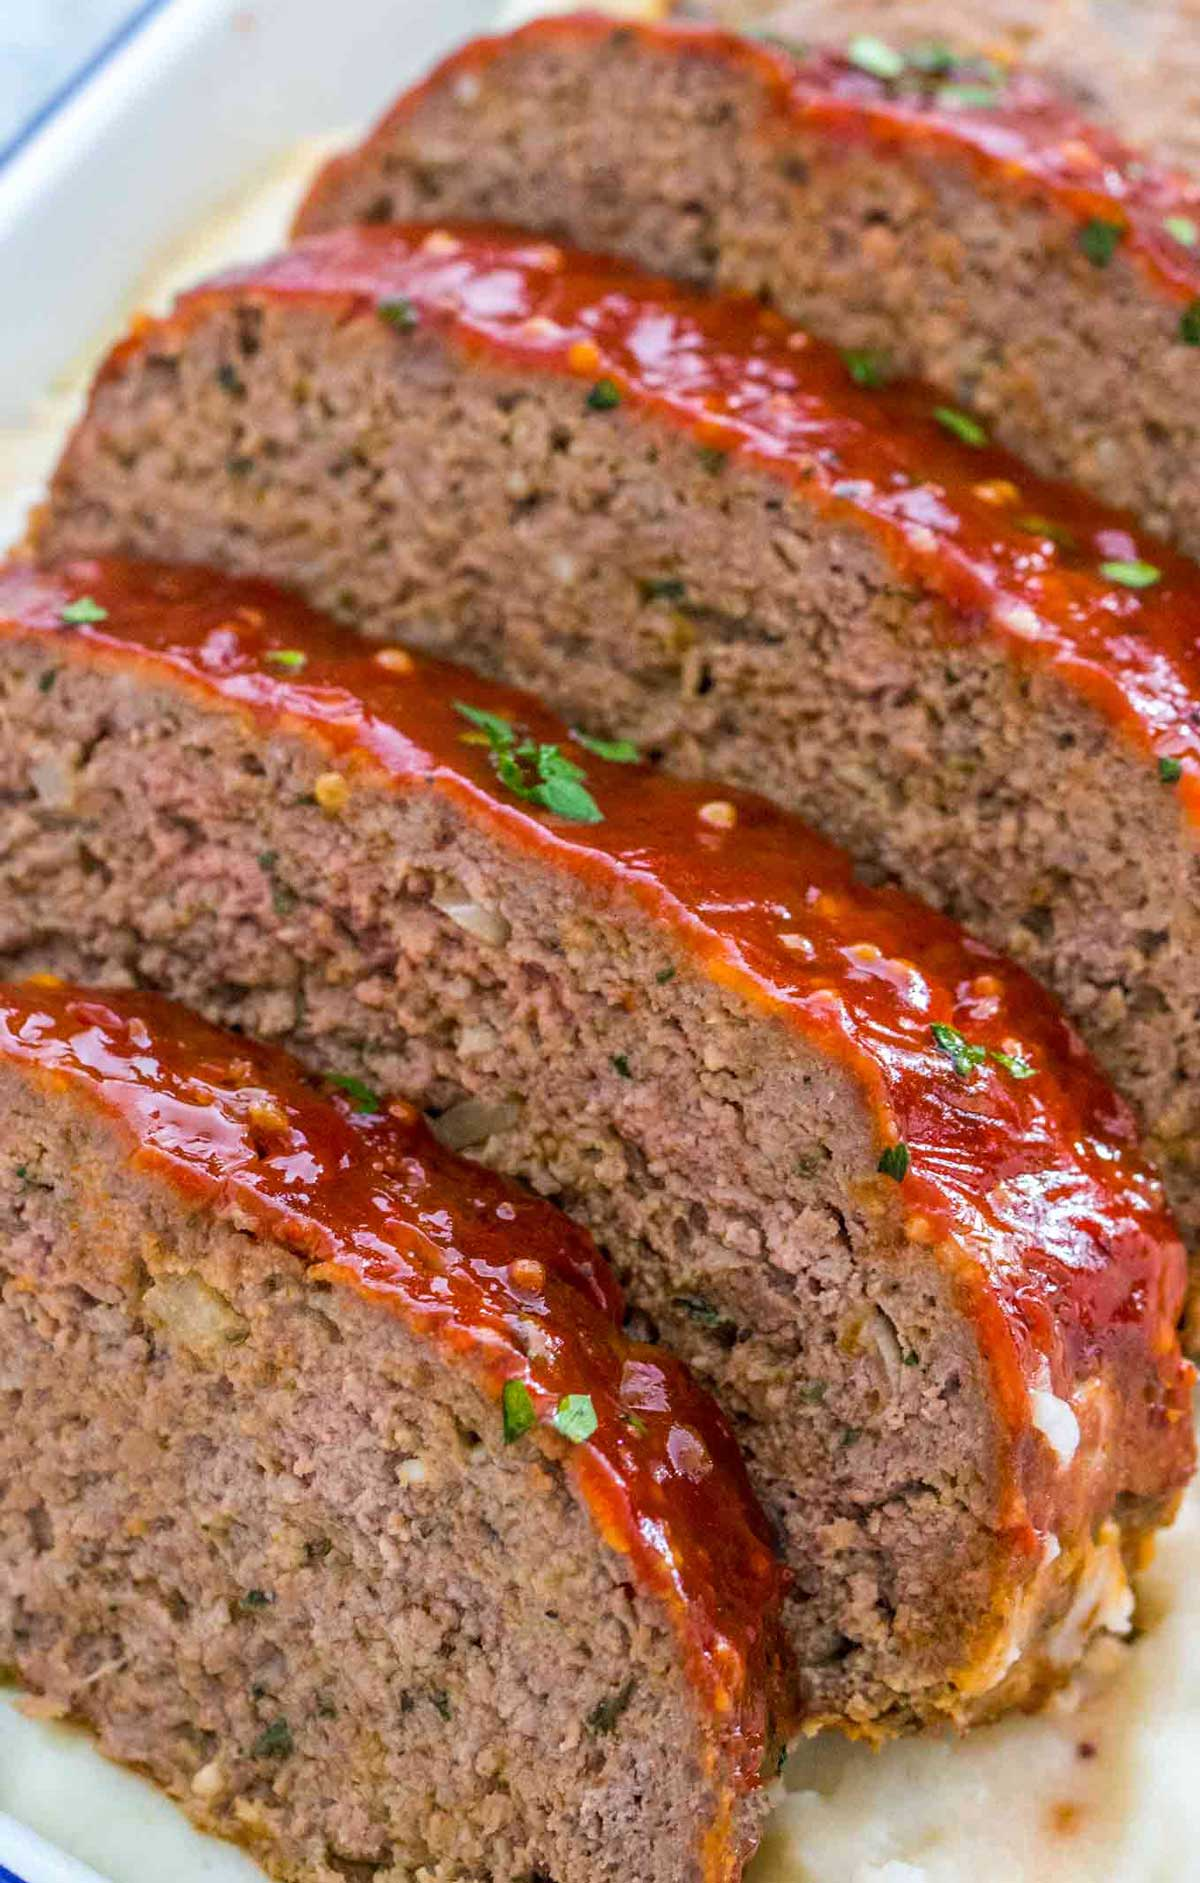 Best Meatloaf Recipe Video Sweet And Savory Meals